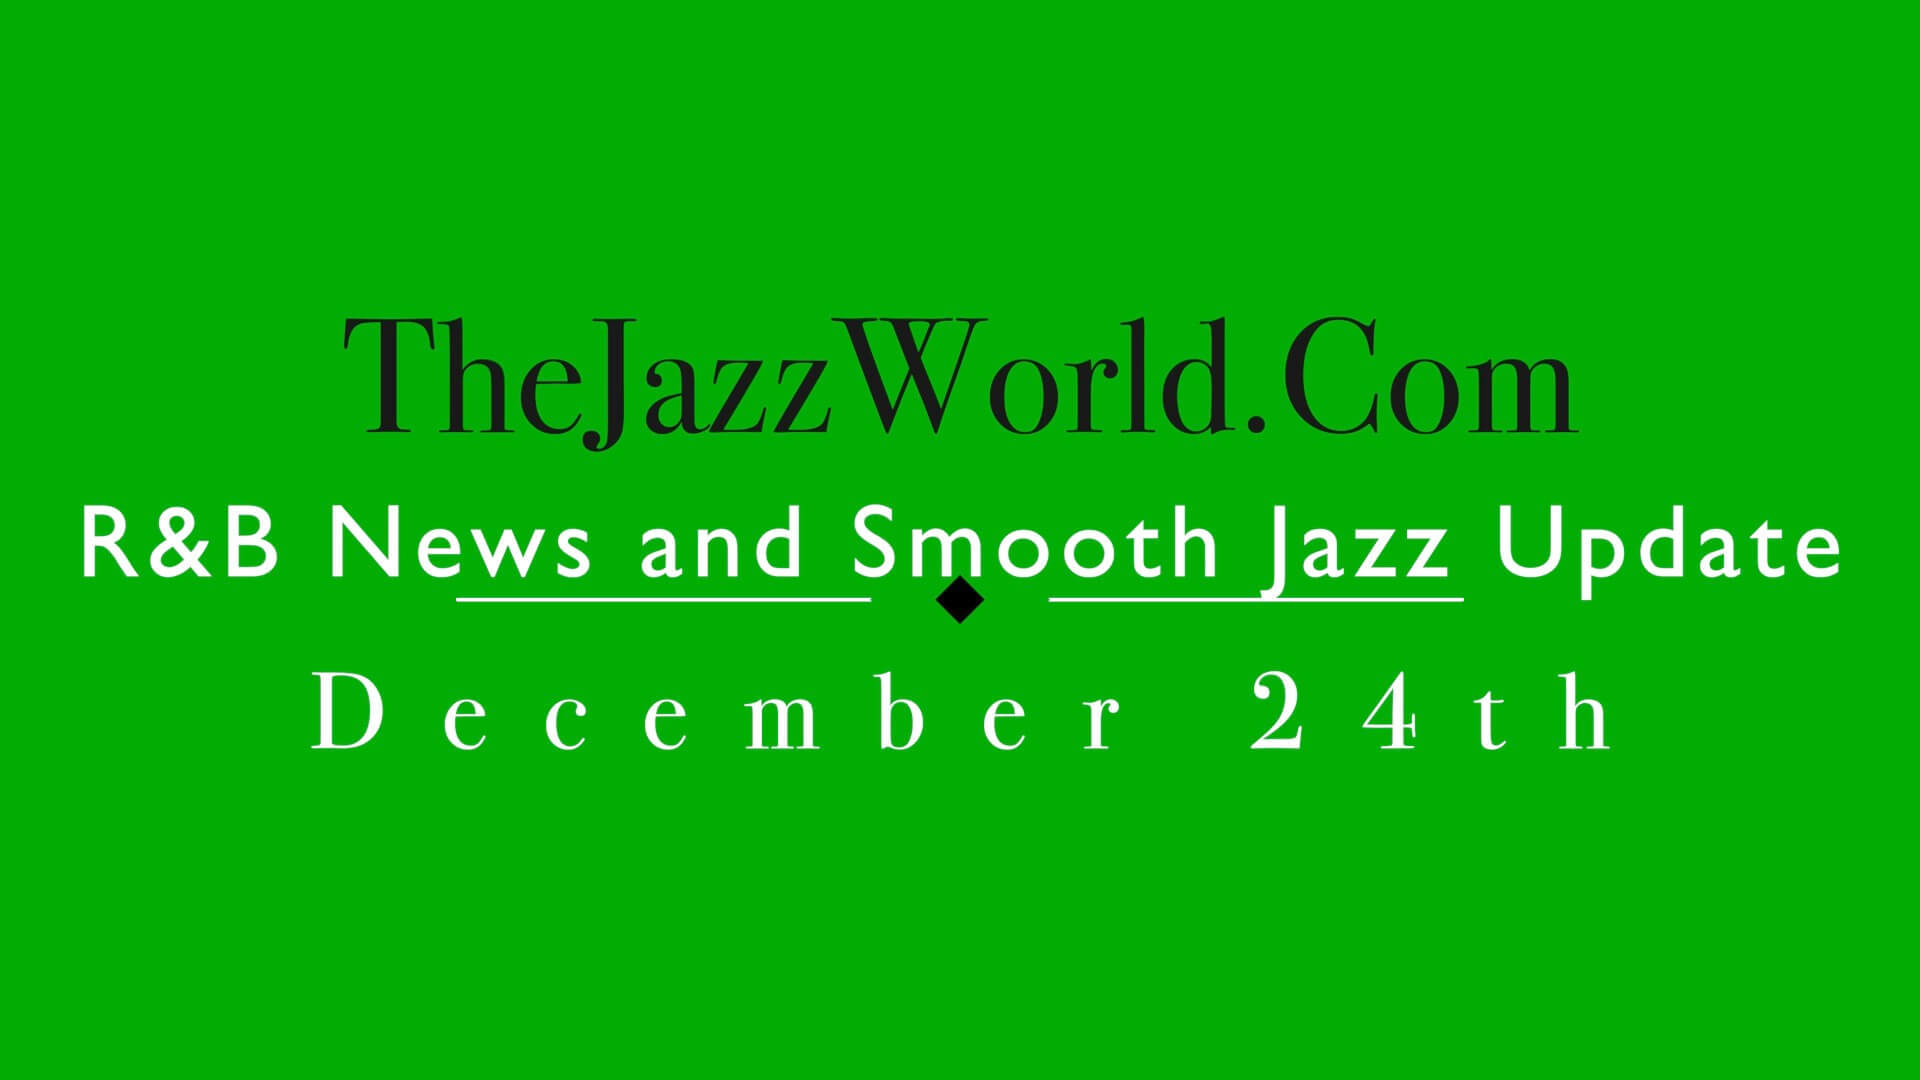 The Jazz World Show 12:24